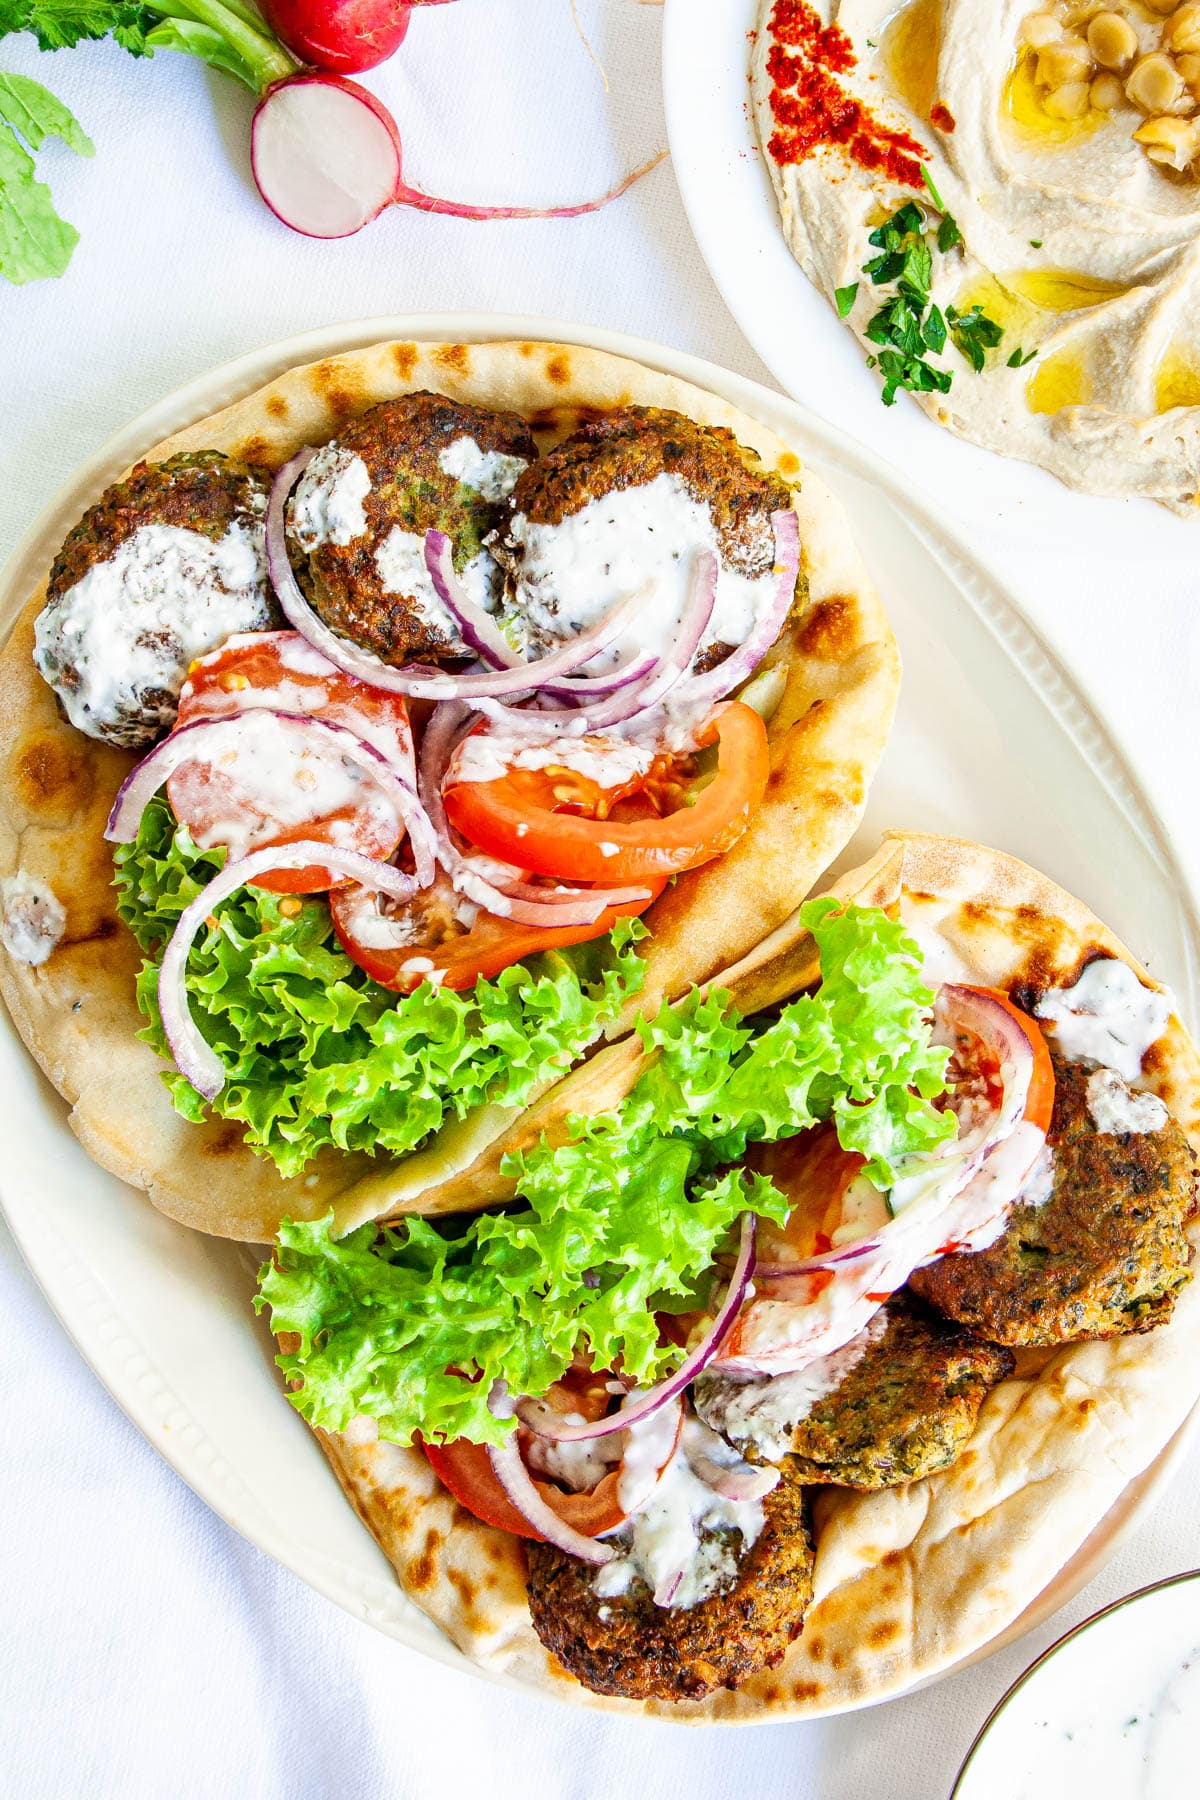 falafel in pita breads with tomatoes, onions, lettuce and tzatziki